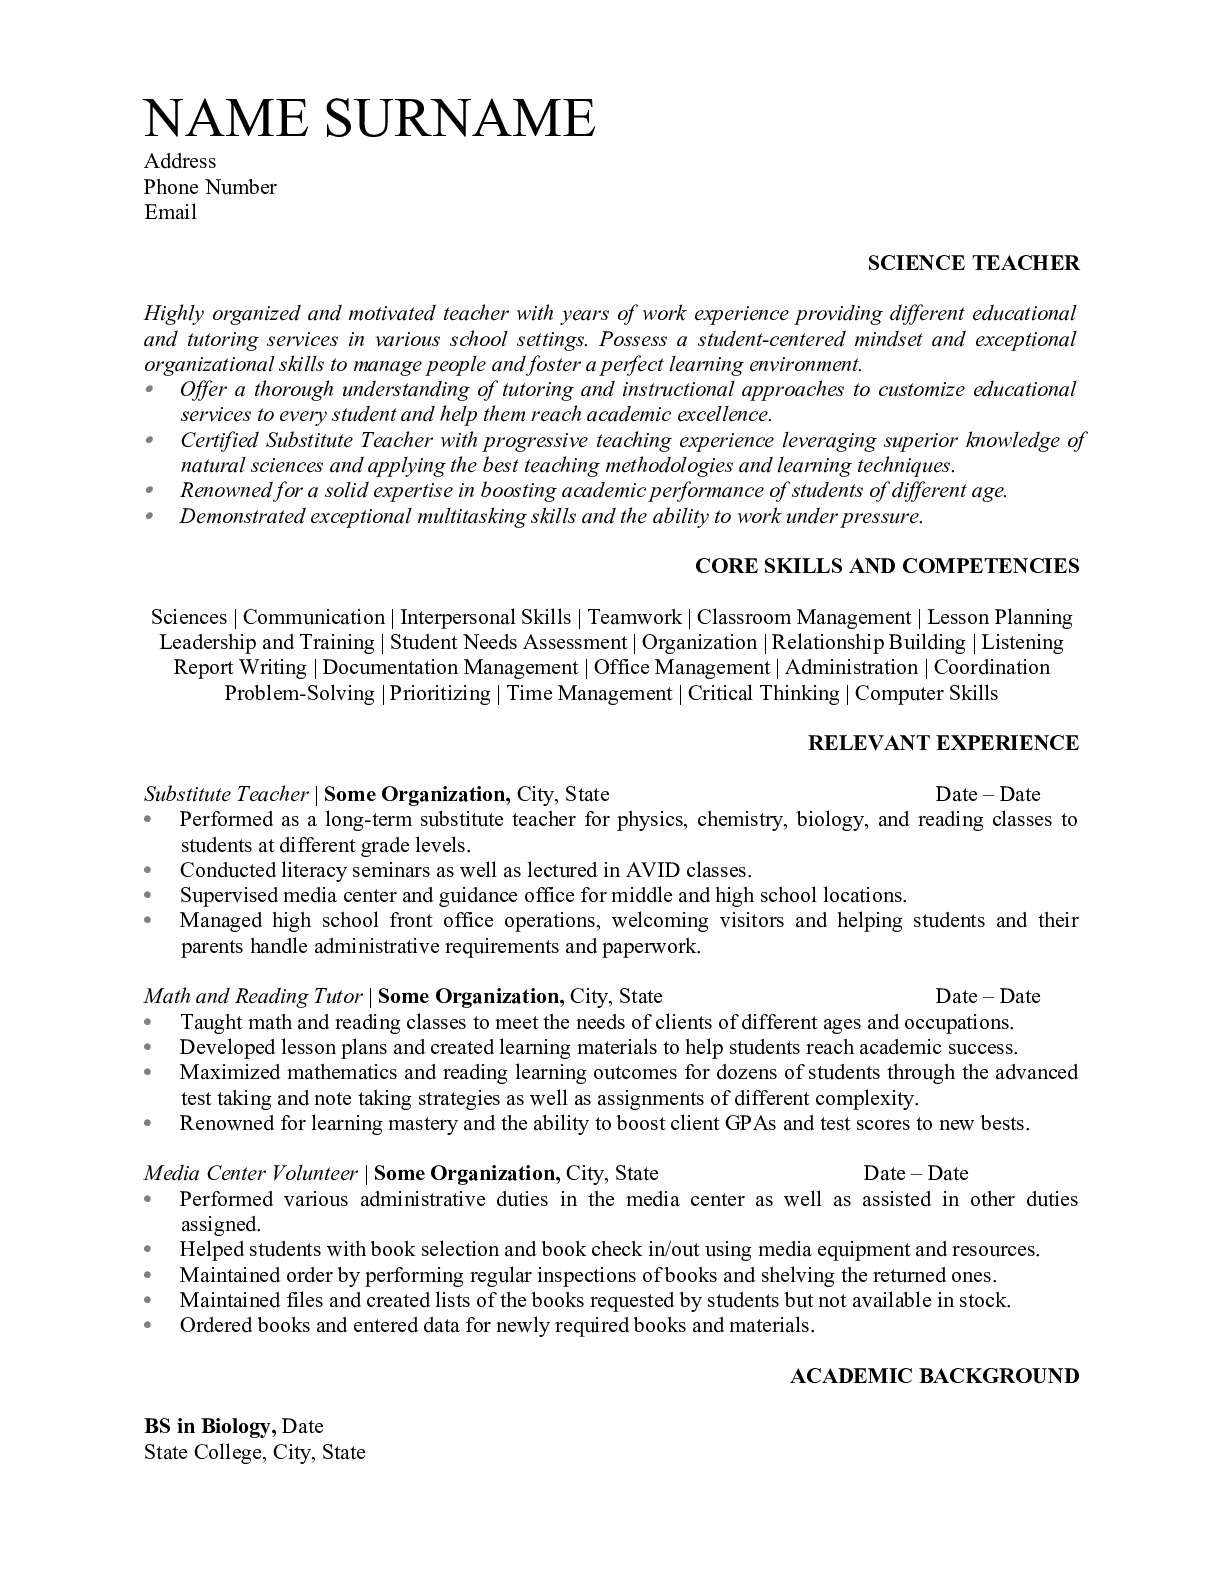 Science Teacher Resume Examples 2019 - ResumeGet.com